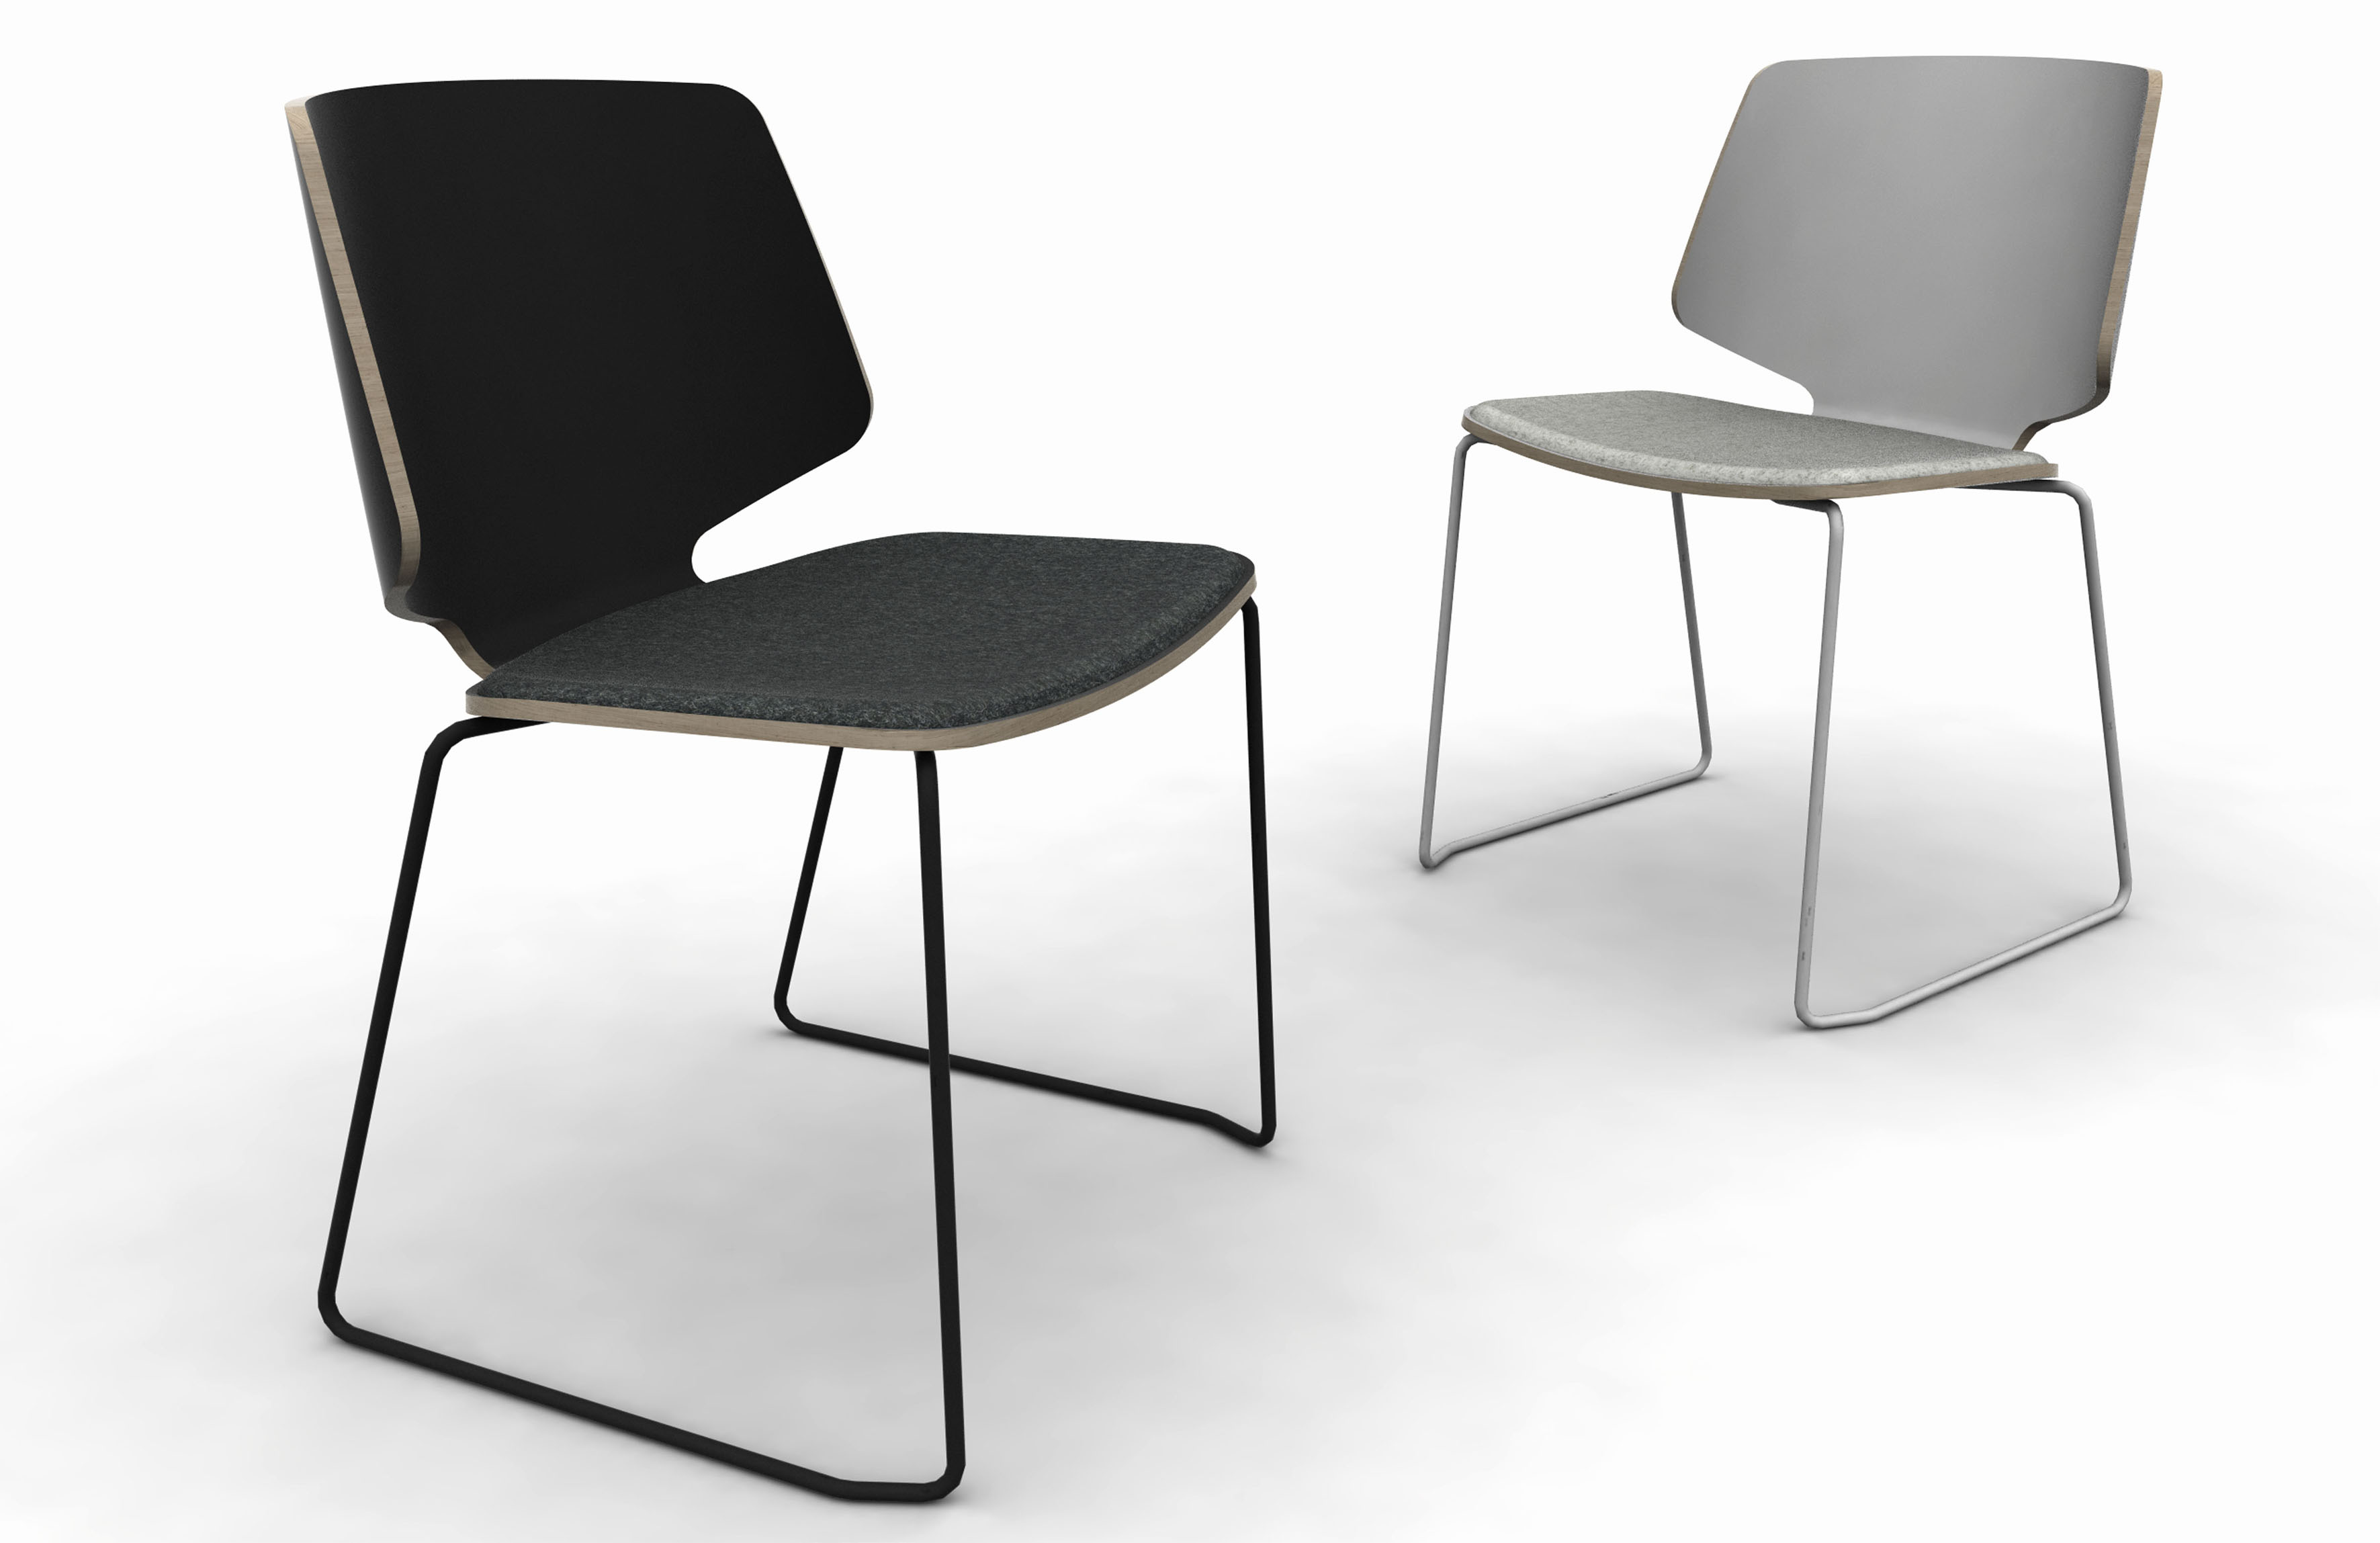 Chaise Moderne Transparente Fly T Collection Chaises Collection By Domitalia Design